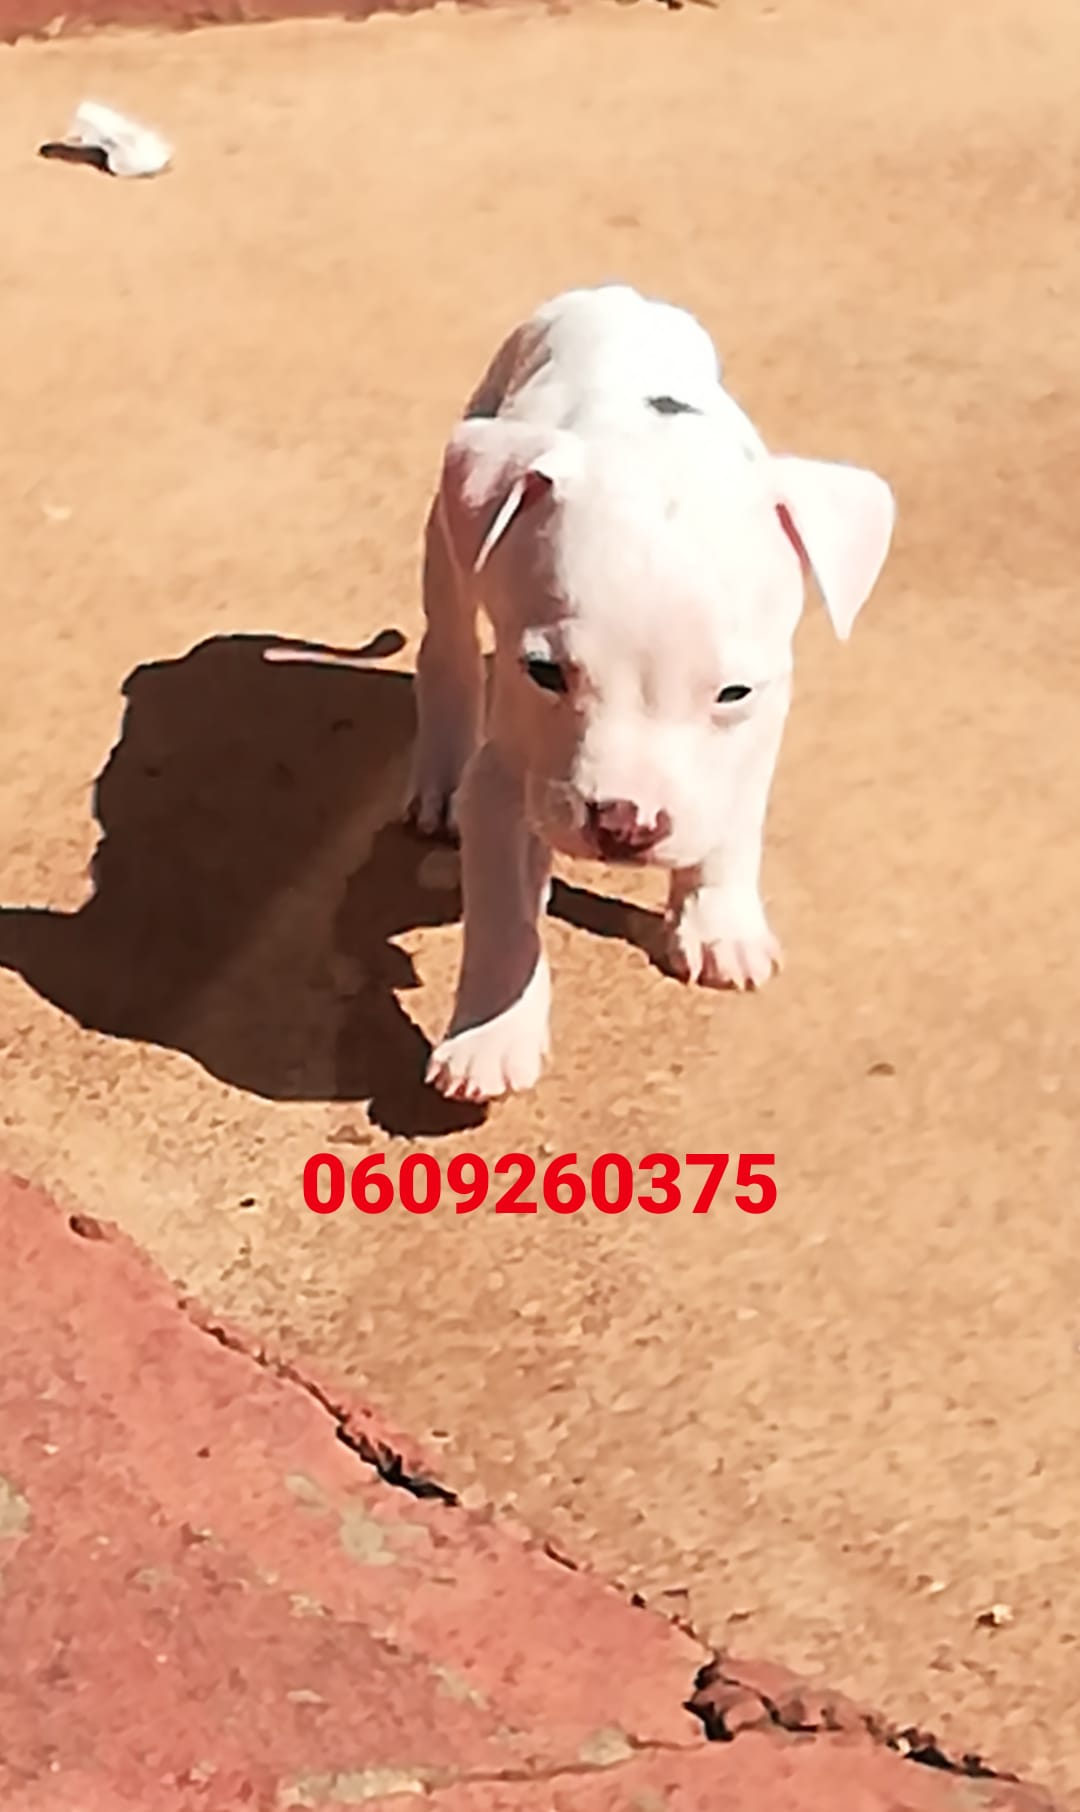 Pitbull Puppies in Pretoria (18/04/2021)